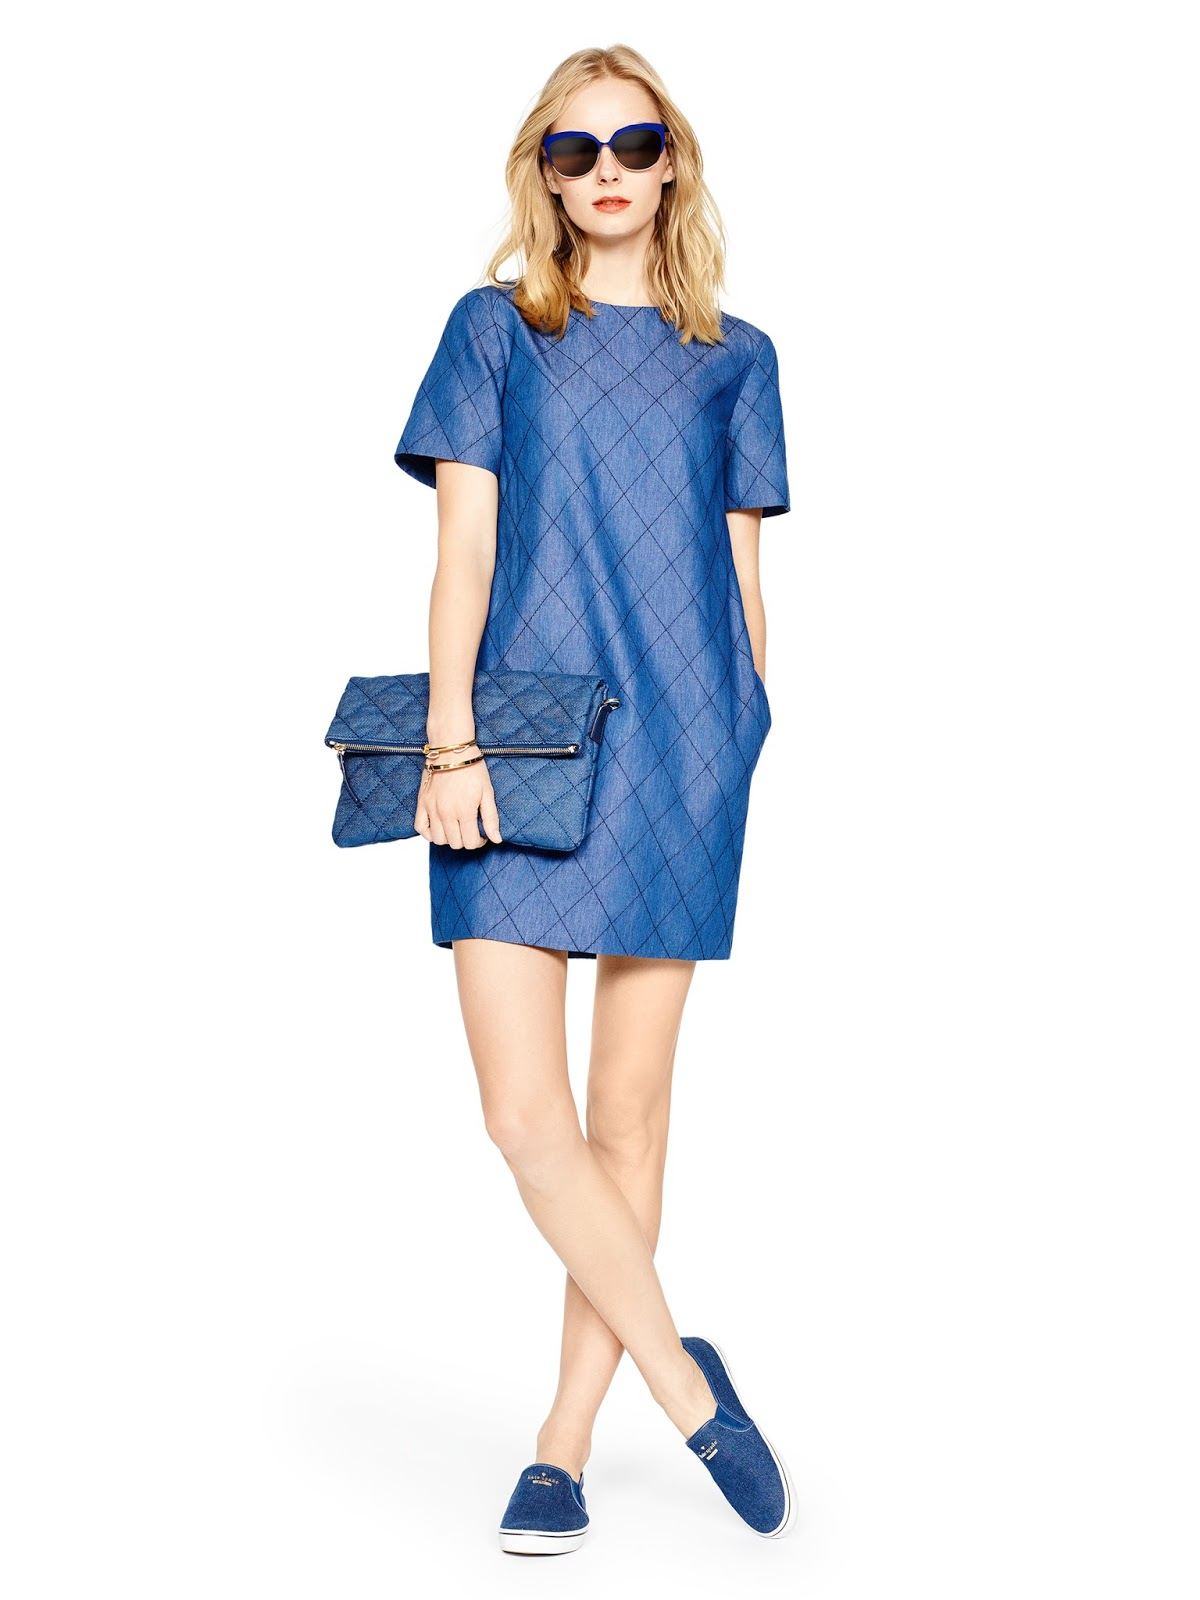 How cute is this quilted chambray dress? Shop it and other goodies during Kate Spade's new surprise sale!